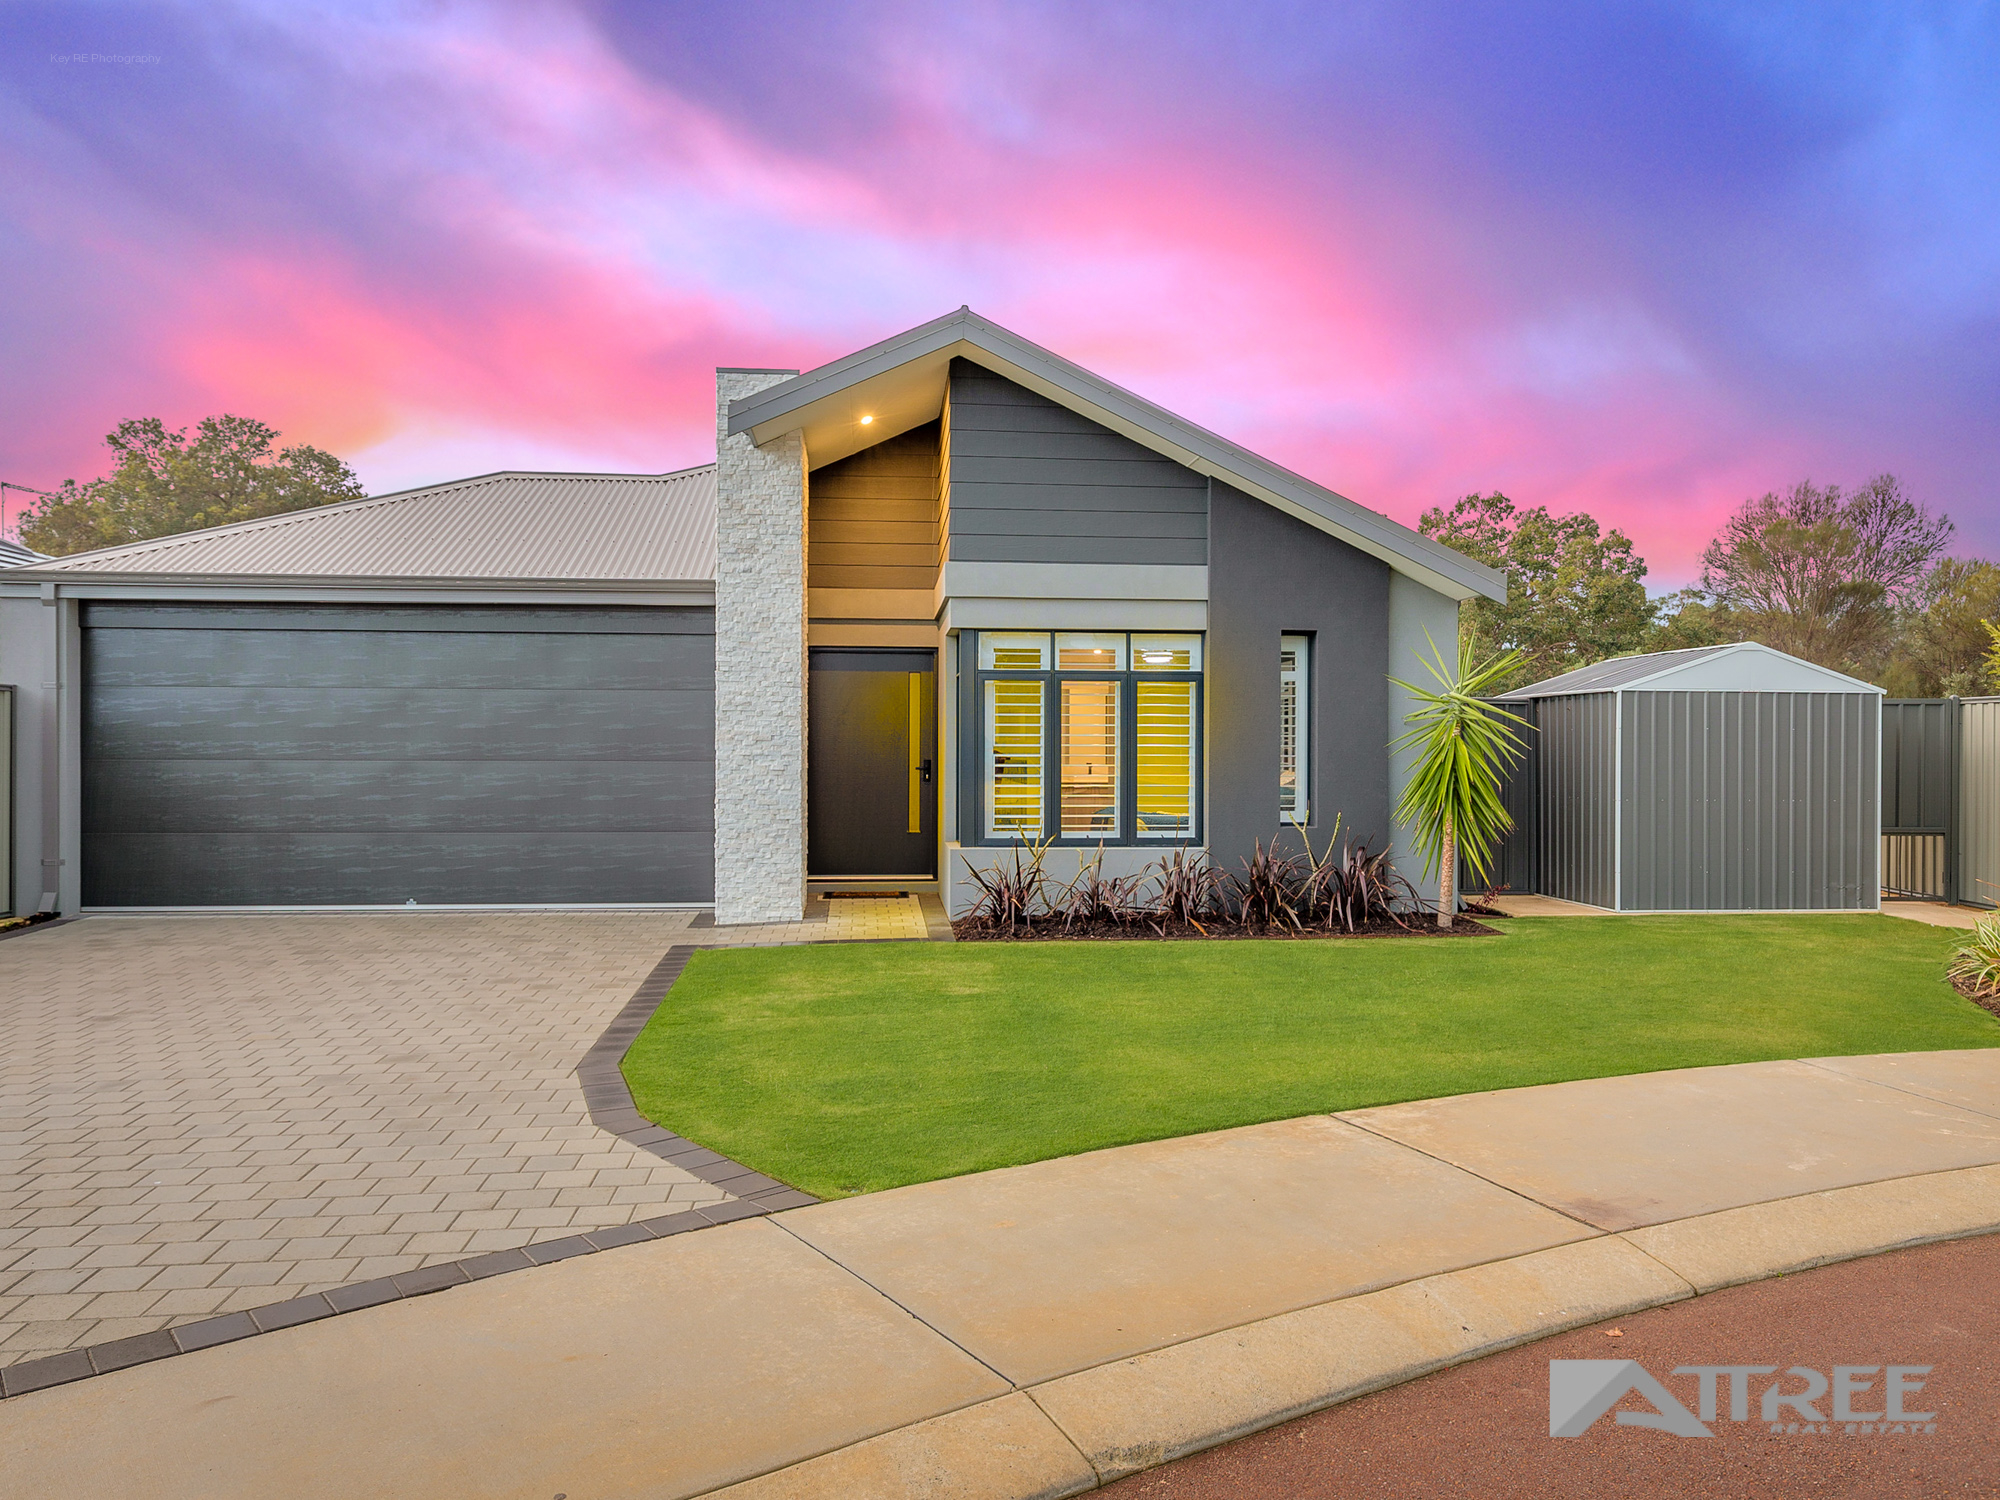 Property for sale in BYFORD, 23 Reliant Retreat, Gareth May : Attree Real Estate